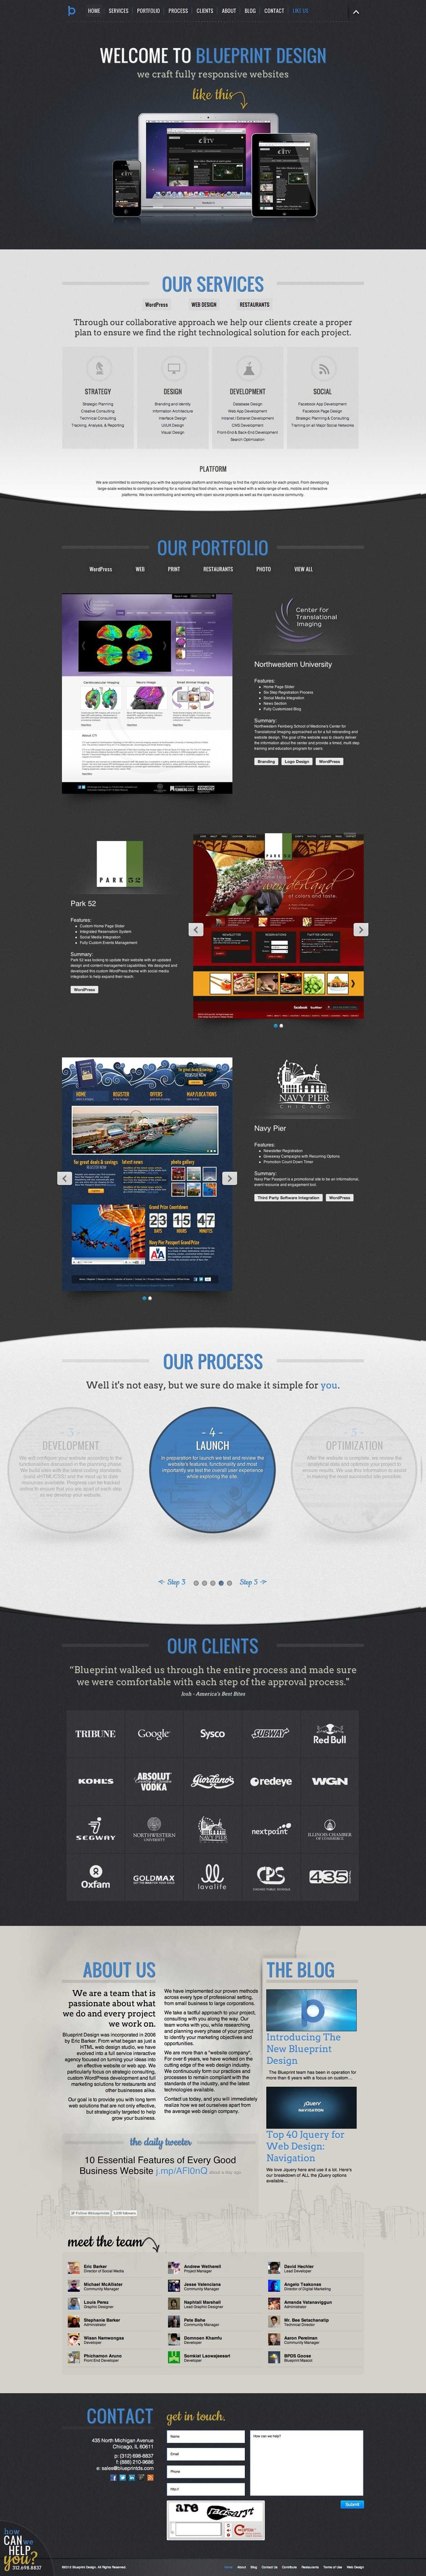 15 best modern web app website design images on pinterest the new soon to be responsive blueprint design studio web design in chicago malvernweather Images